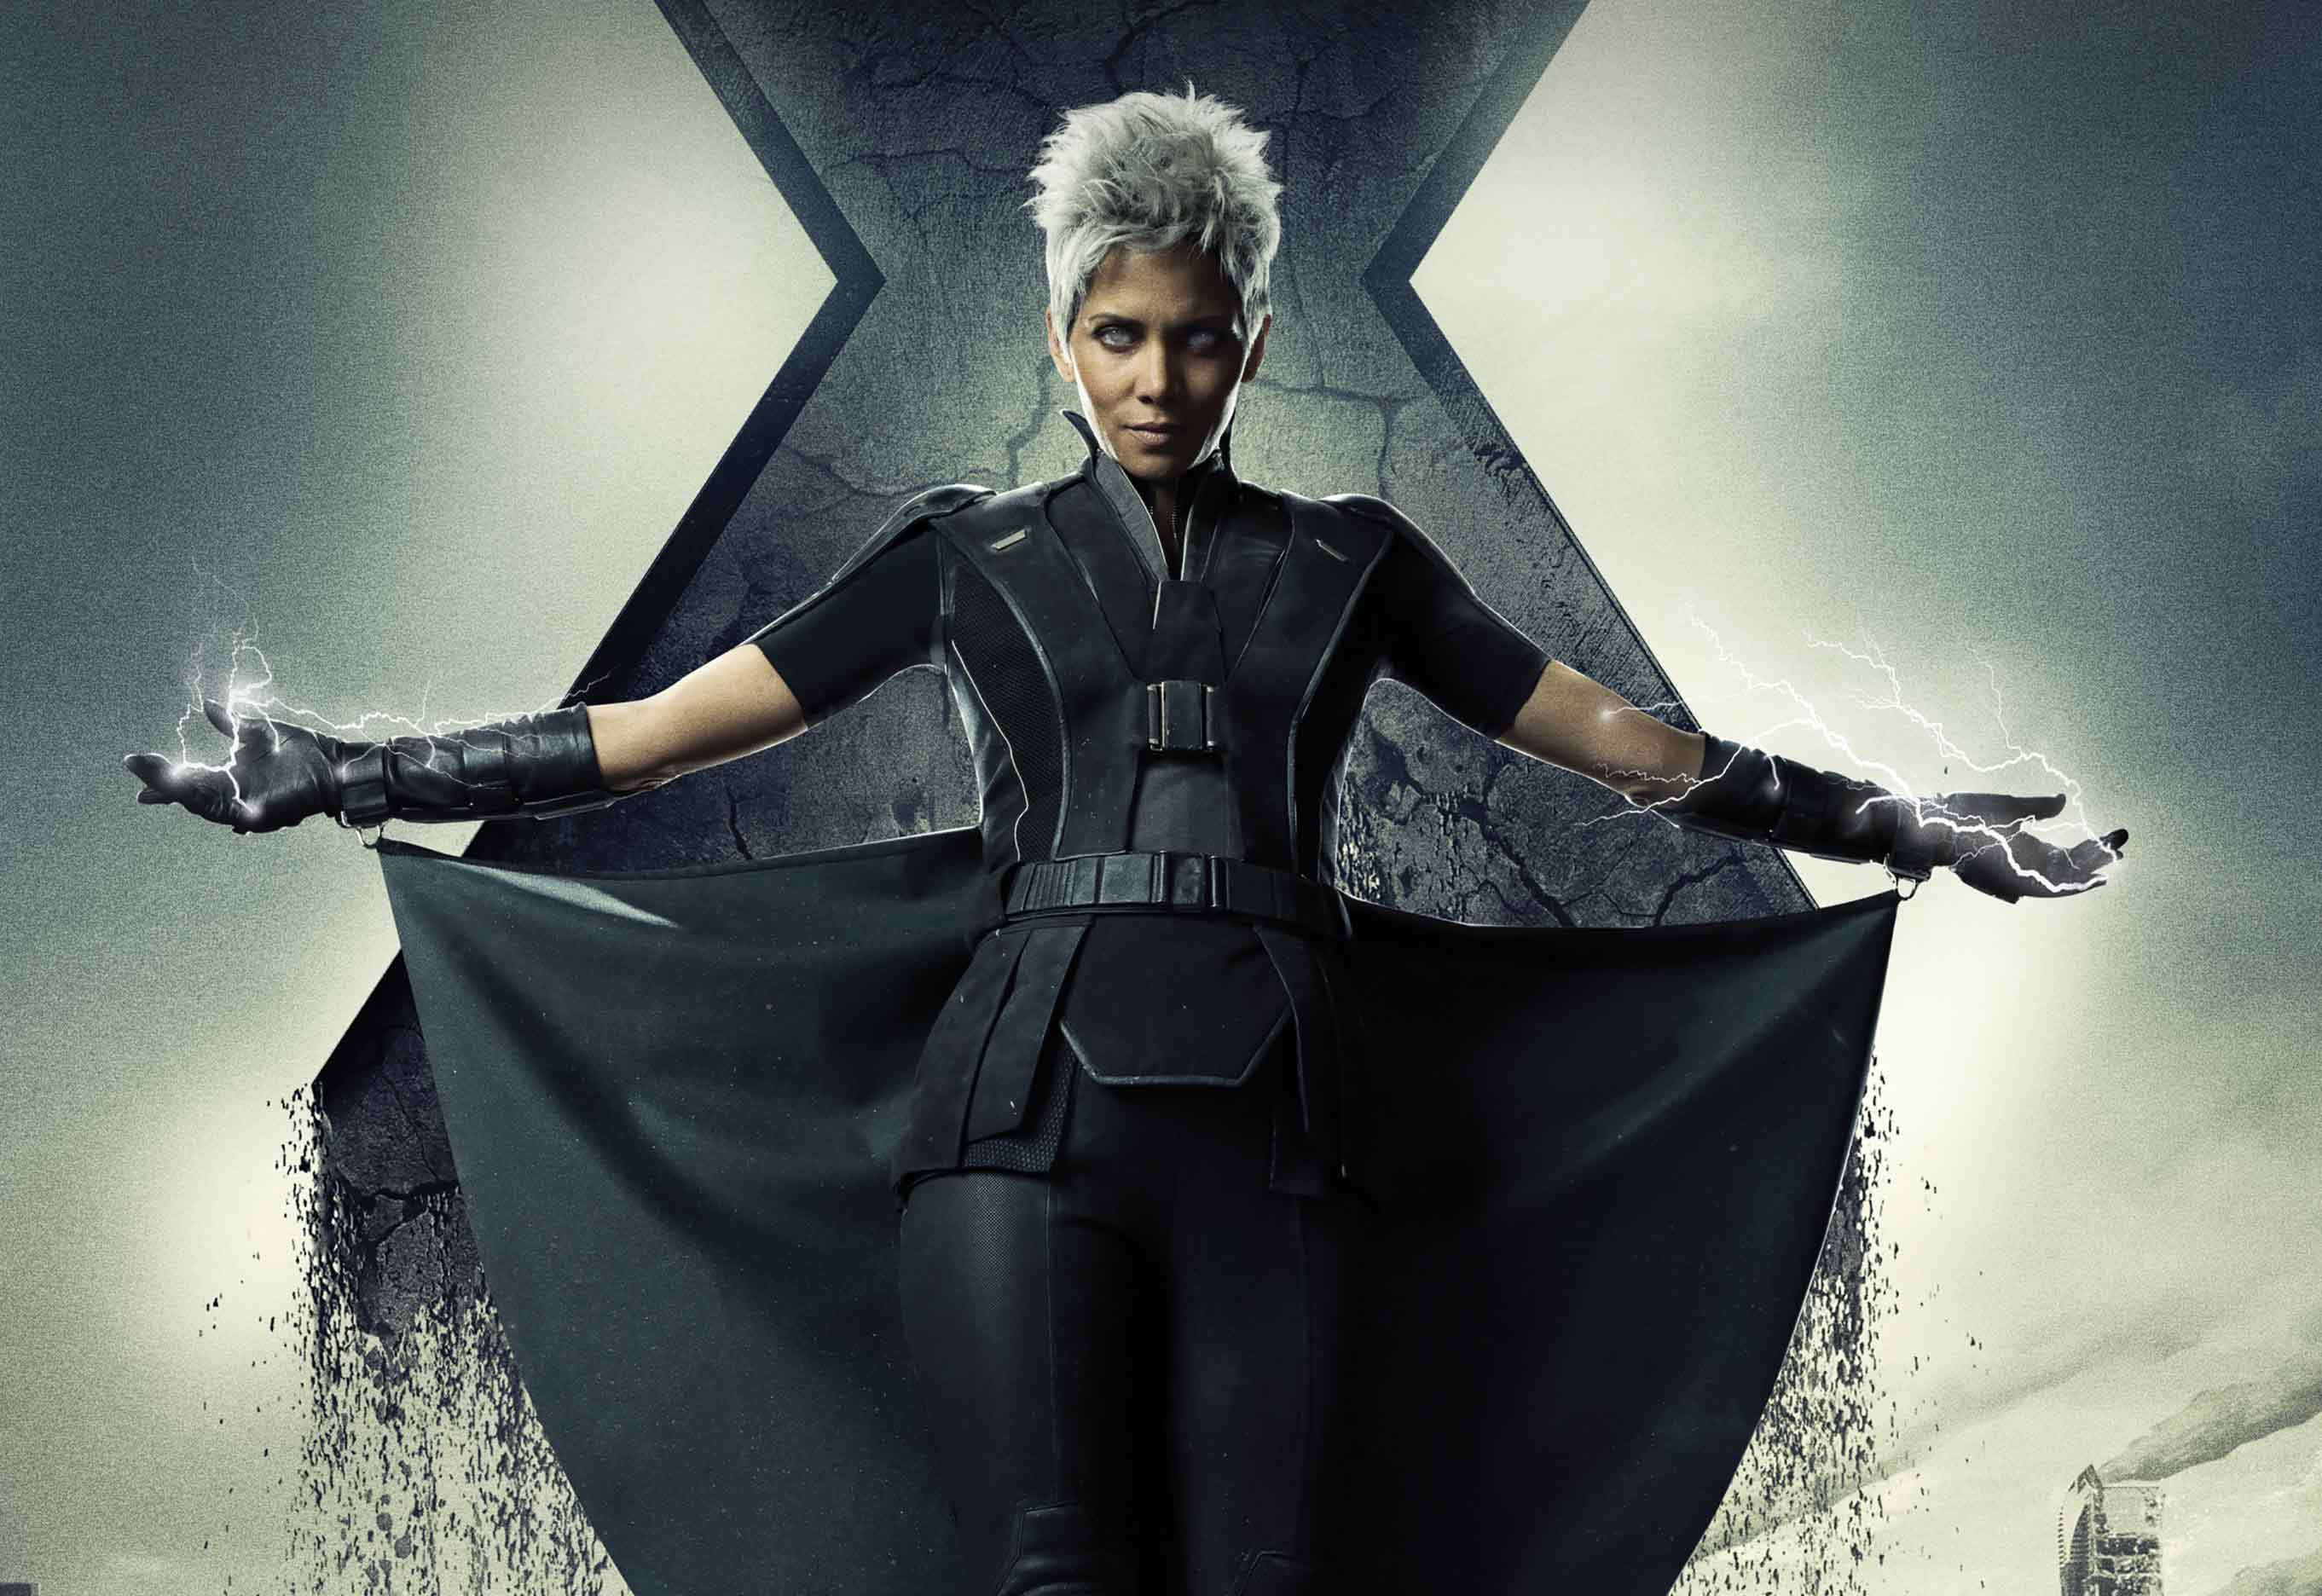 X Men Days of Future Past   The Excellent part of the Series 2723x1872